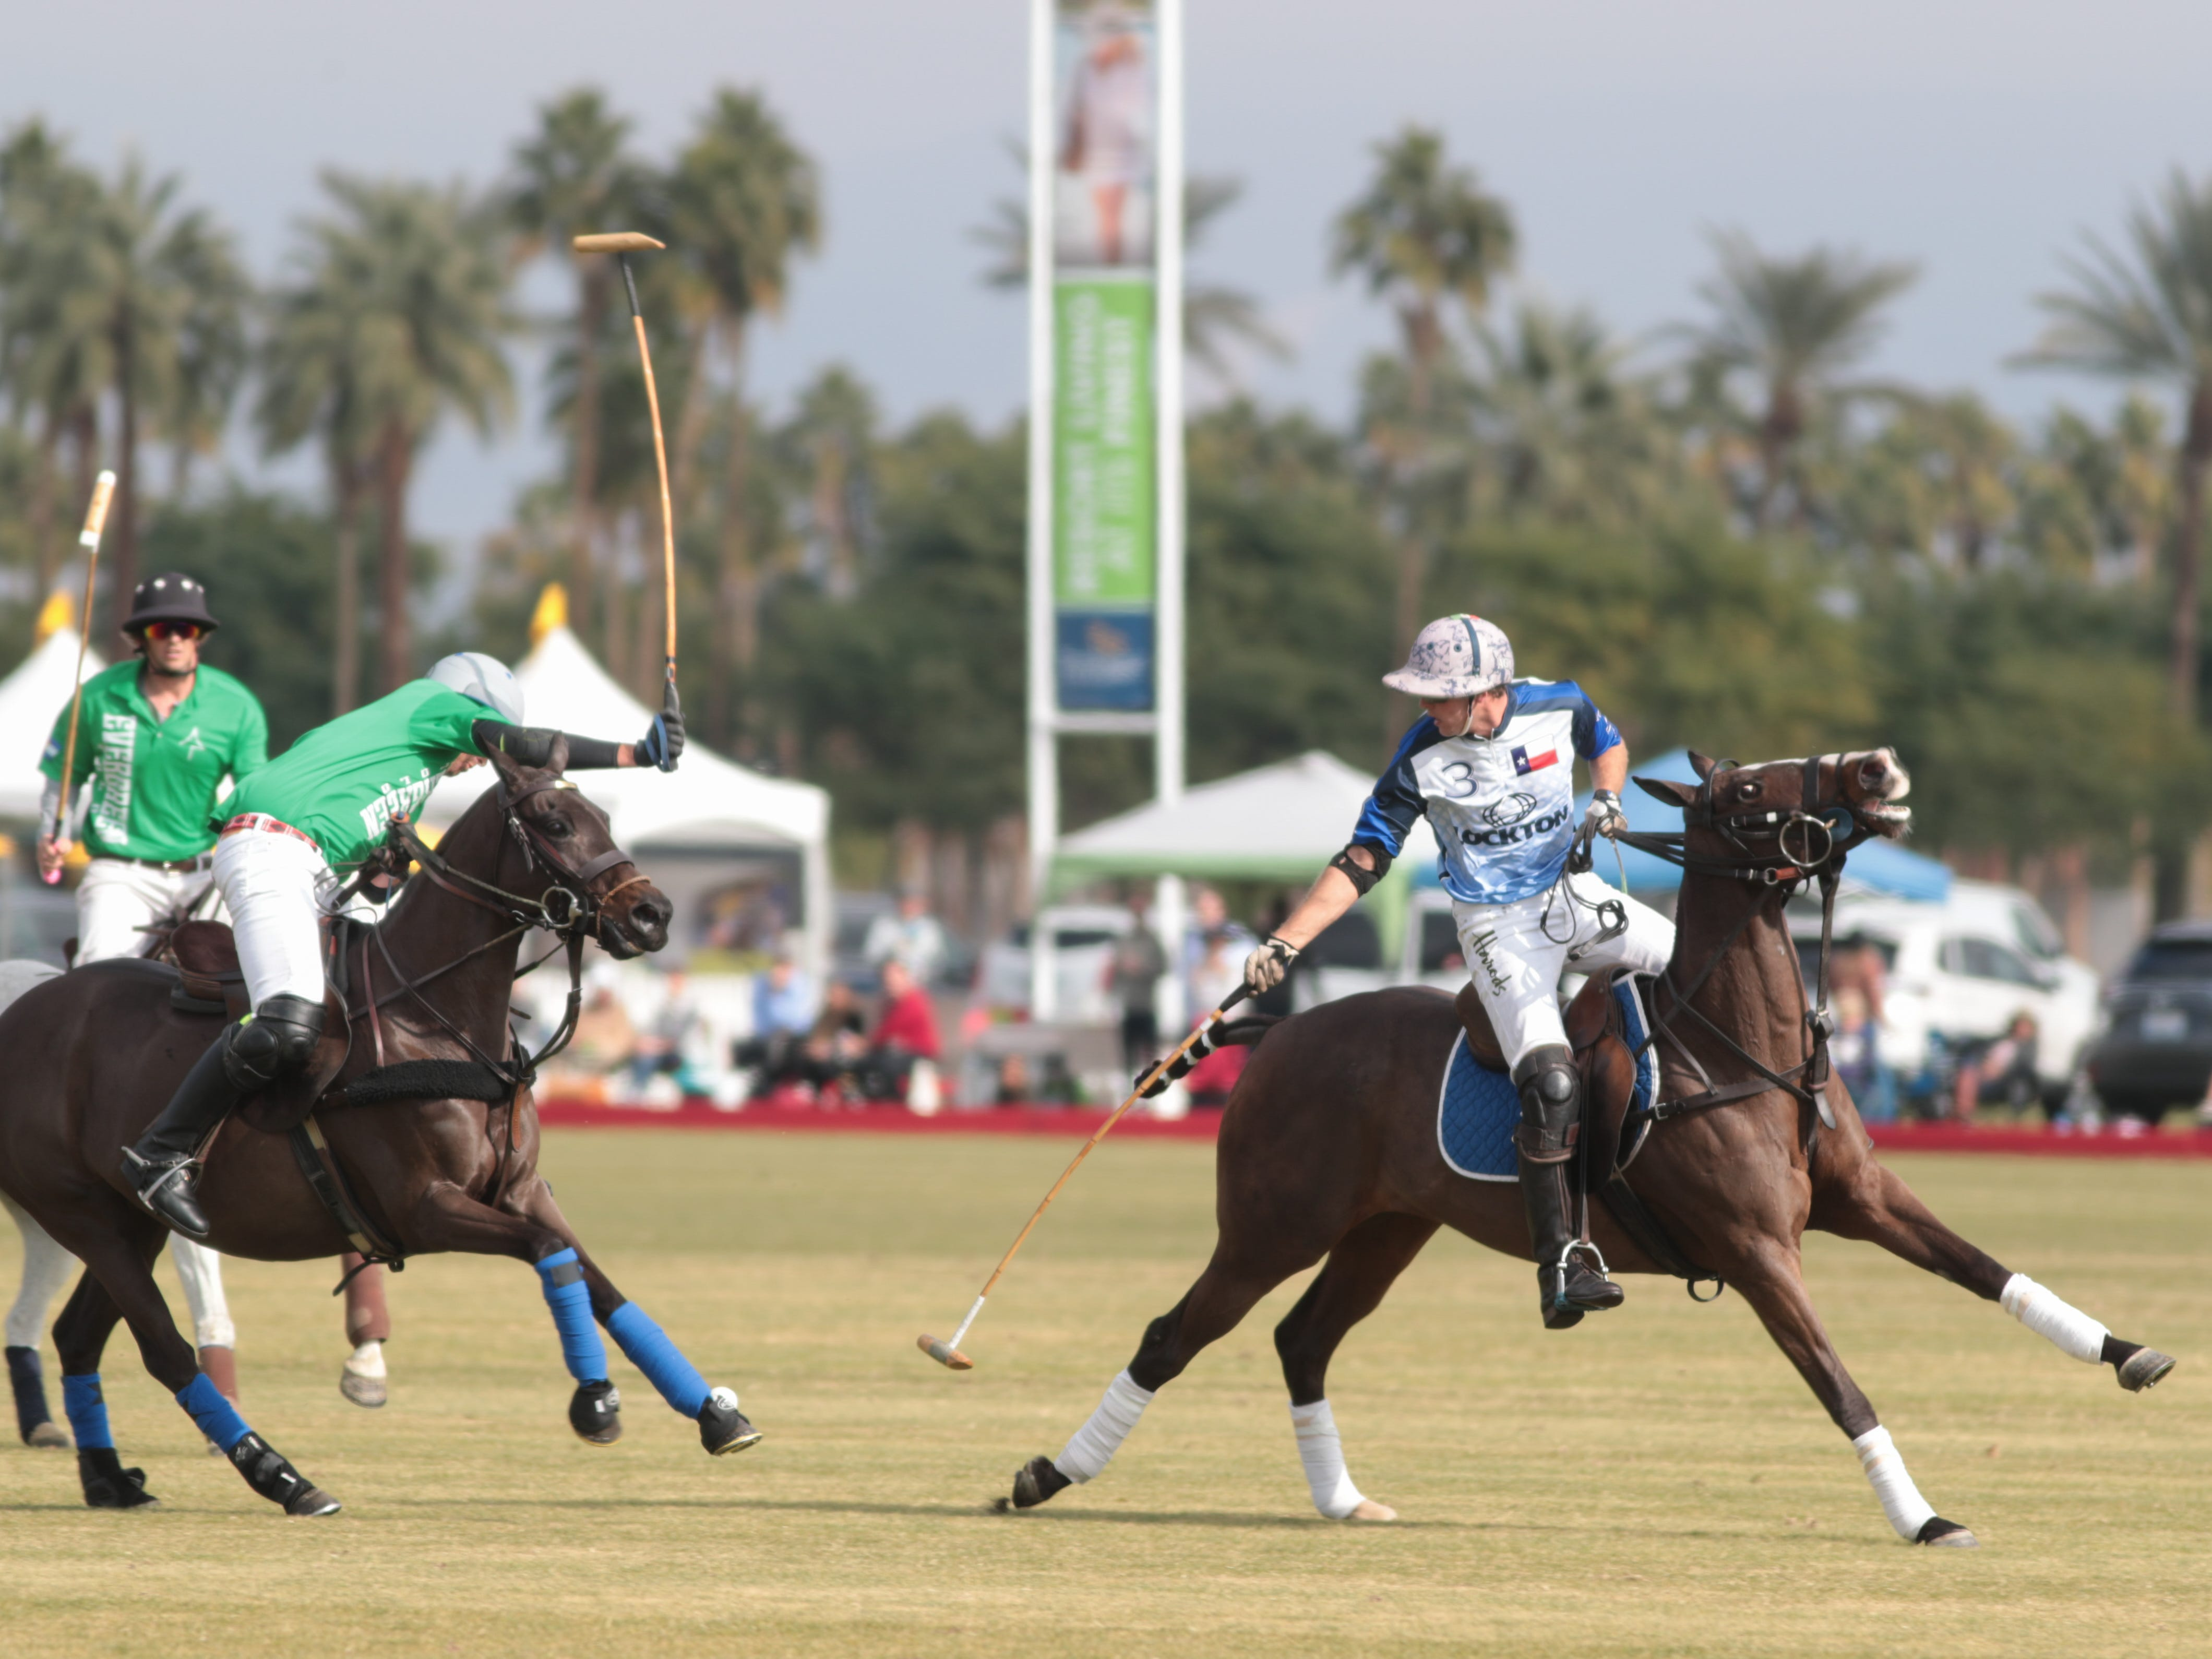 at opening day at the Empire Polo Club, Indio, Calif., Sunday, January 6, 2018.